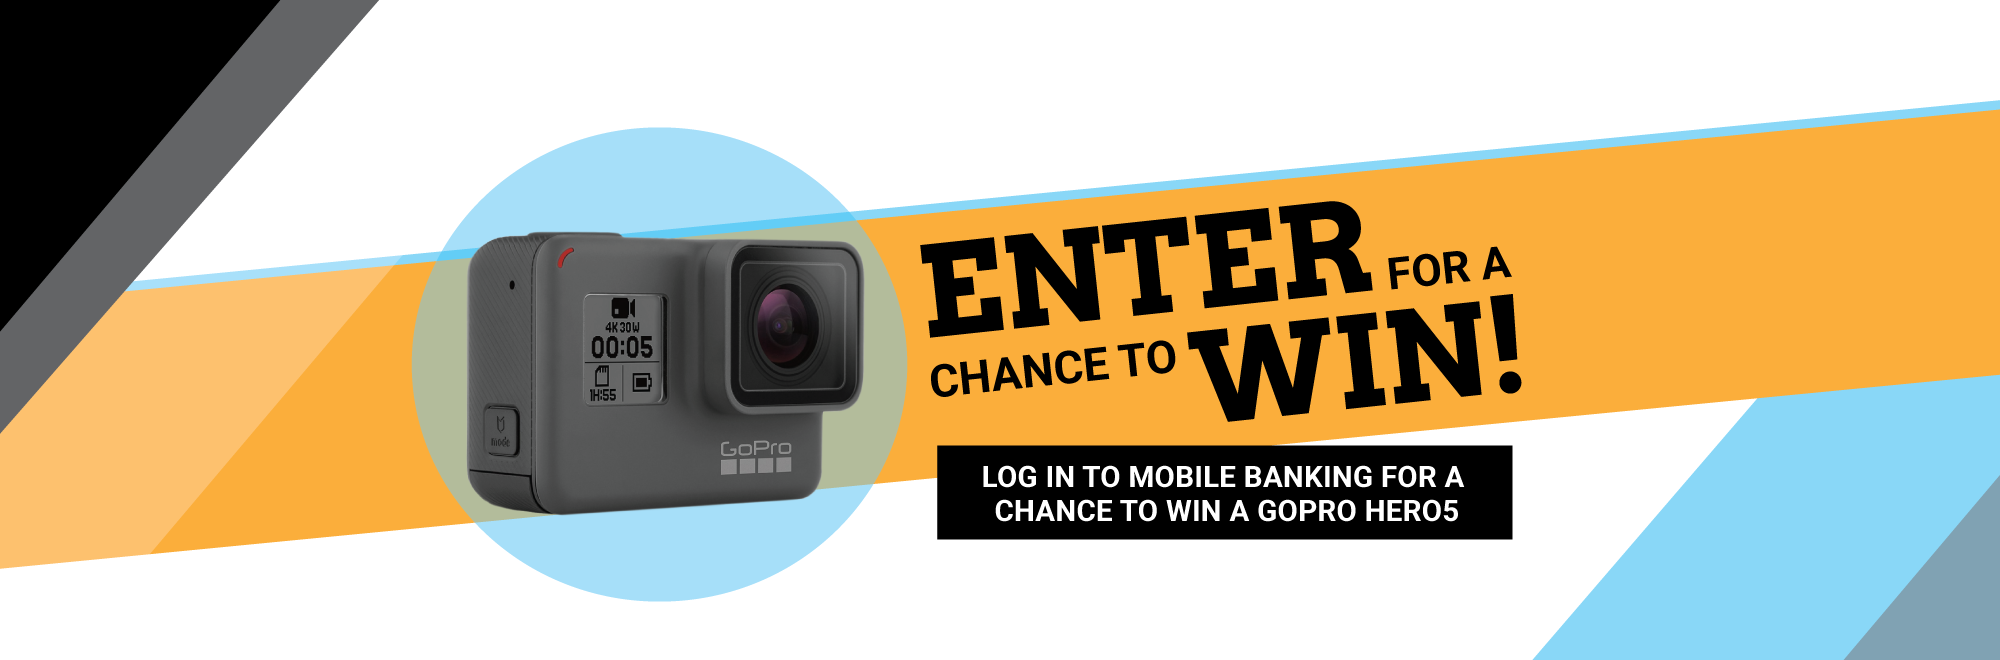 Login to mobile banking & win!